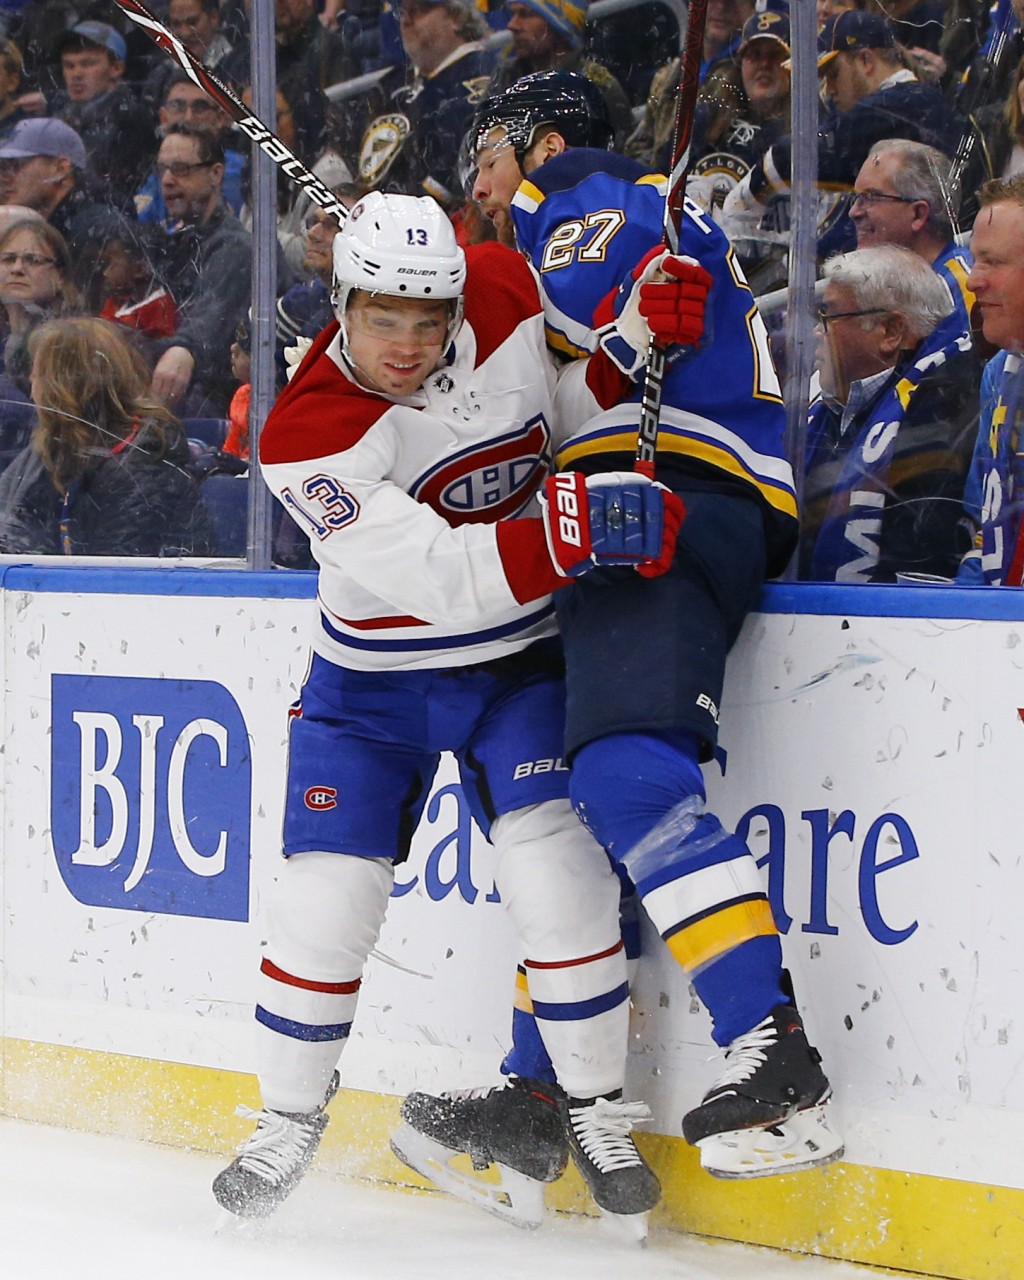 Montreal Canadiens' Max Domi, left, checks St. Louis Blues' Alex Pietrangelo into the boards during the first period of an NHL hockey game Thursday, J